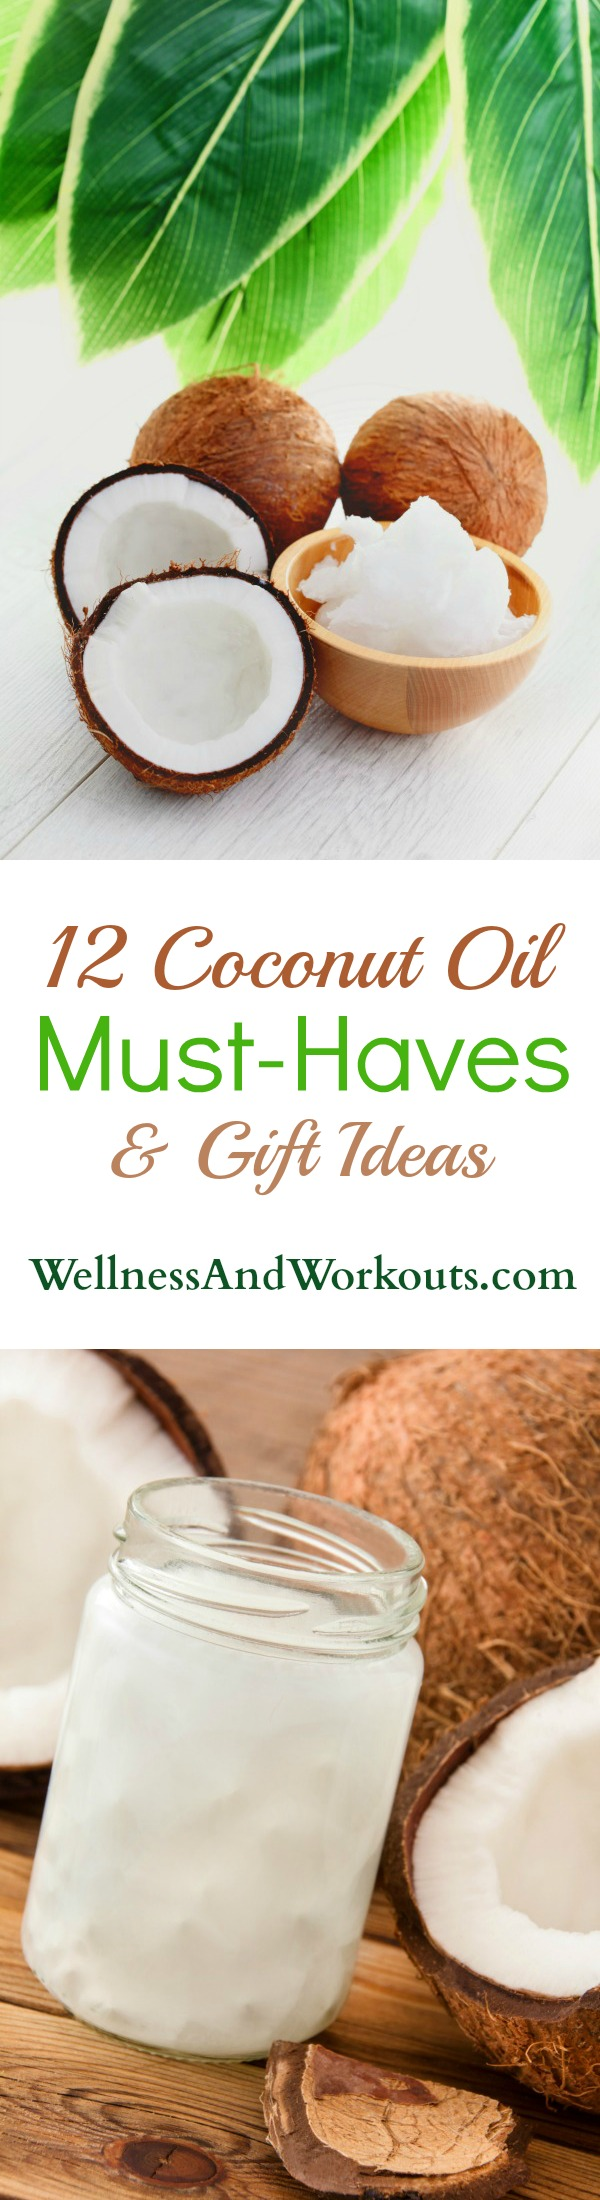 Coconut oil has so many uses--for weight loss, smoothies, DIY natural beauty, cooking and recipes. Here is my list of 12+ must haves and gift ideas for the coconut oil lover!Have you seen #6 before?